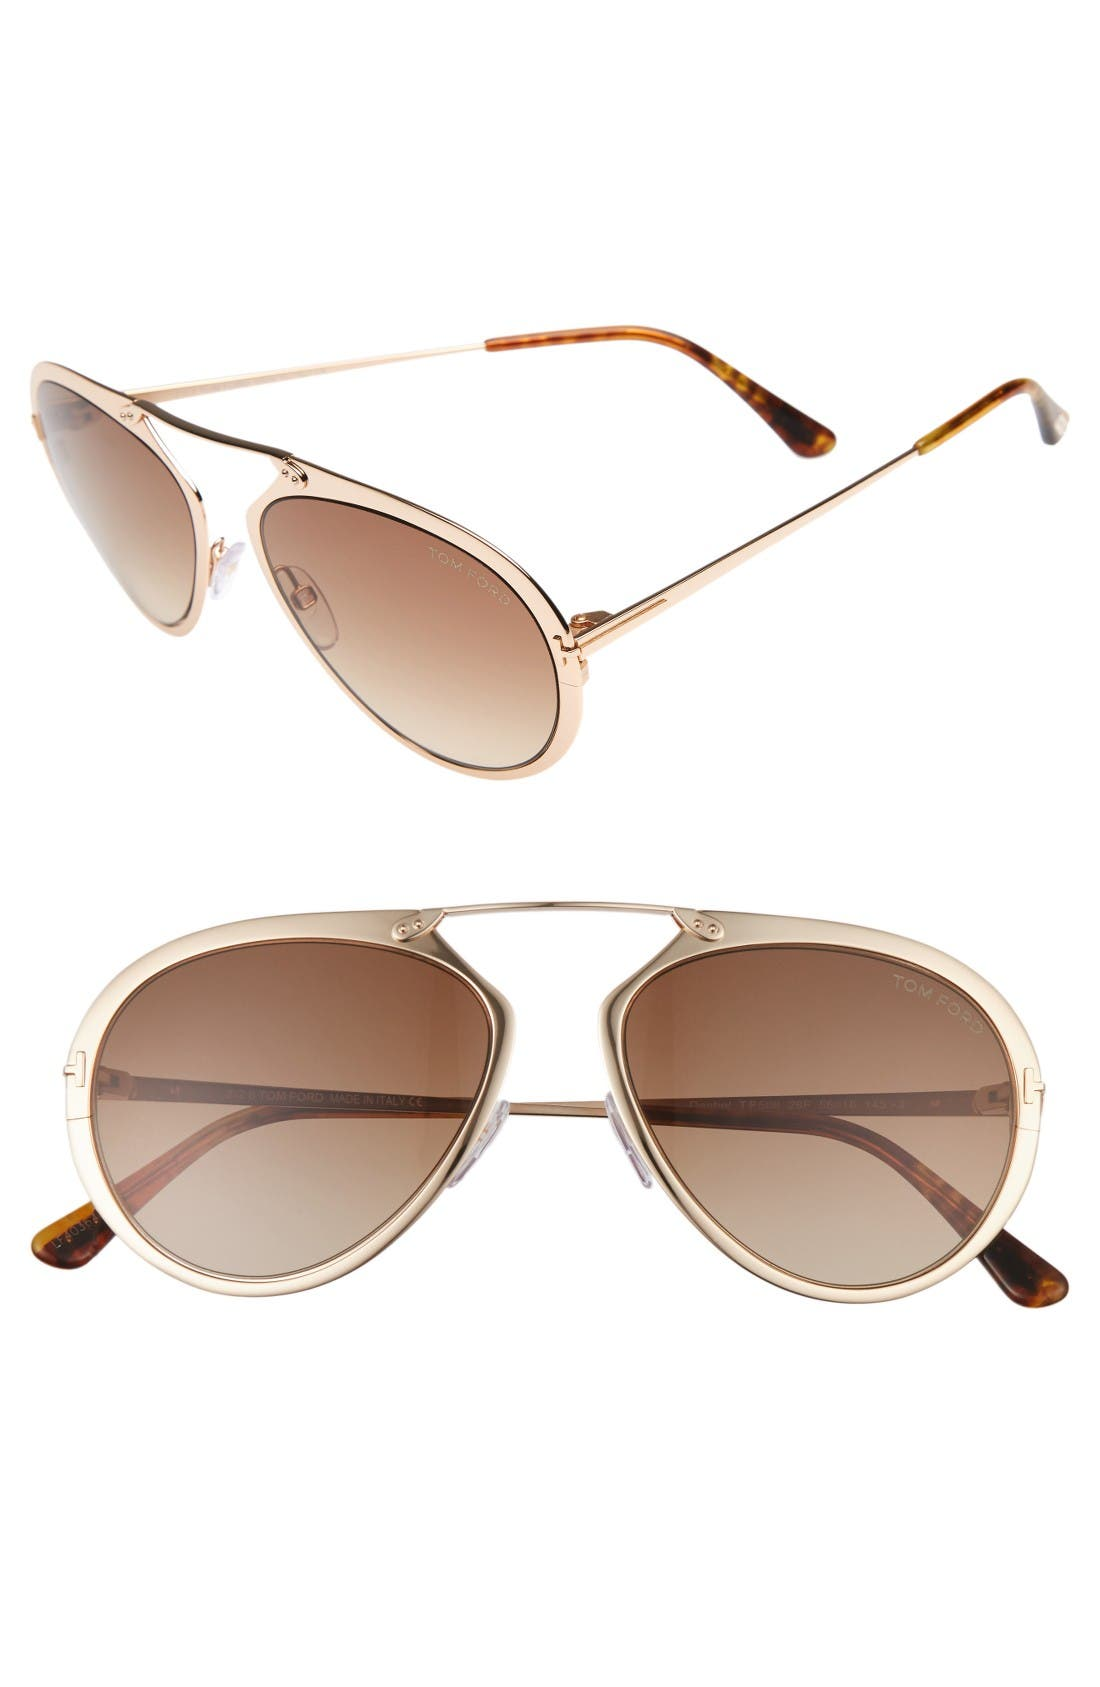 Tom Ford Dashel 55mm Sunglasses